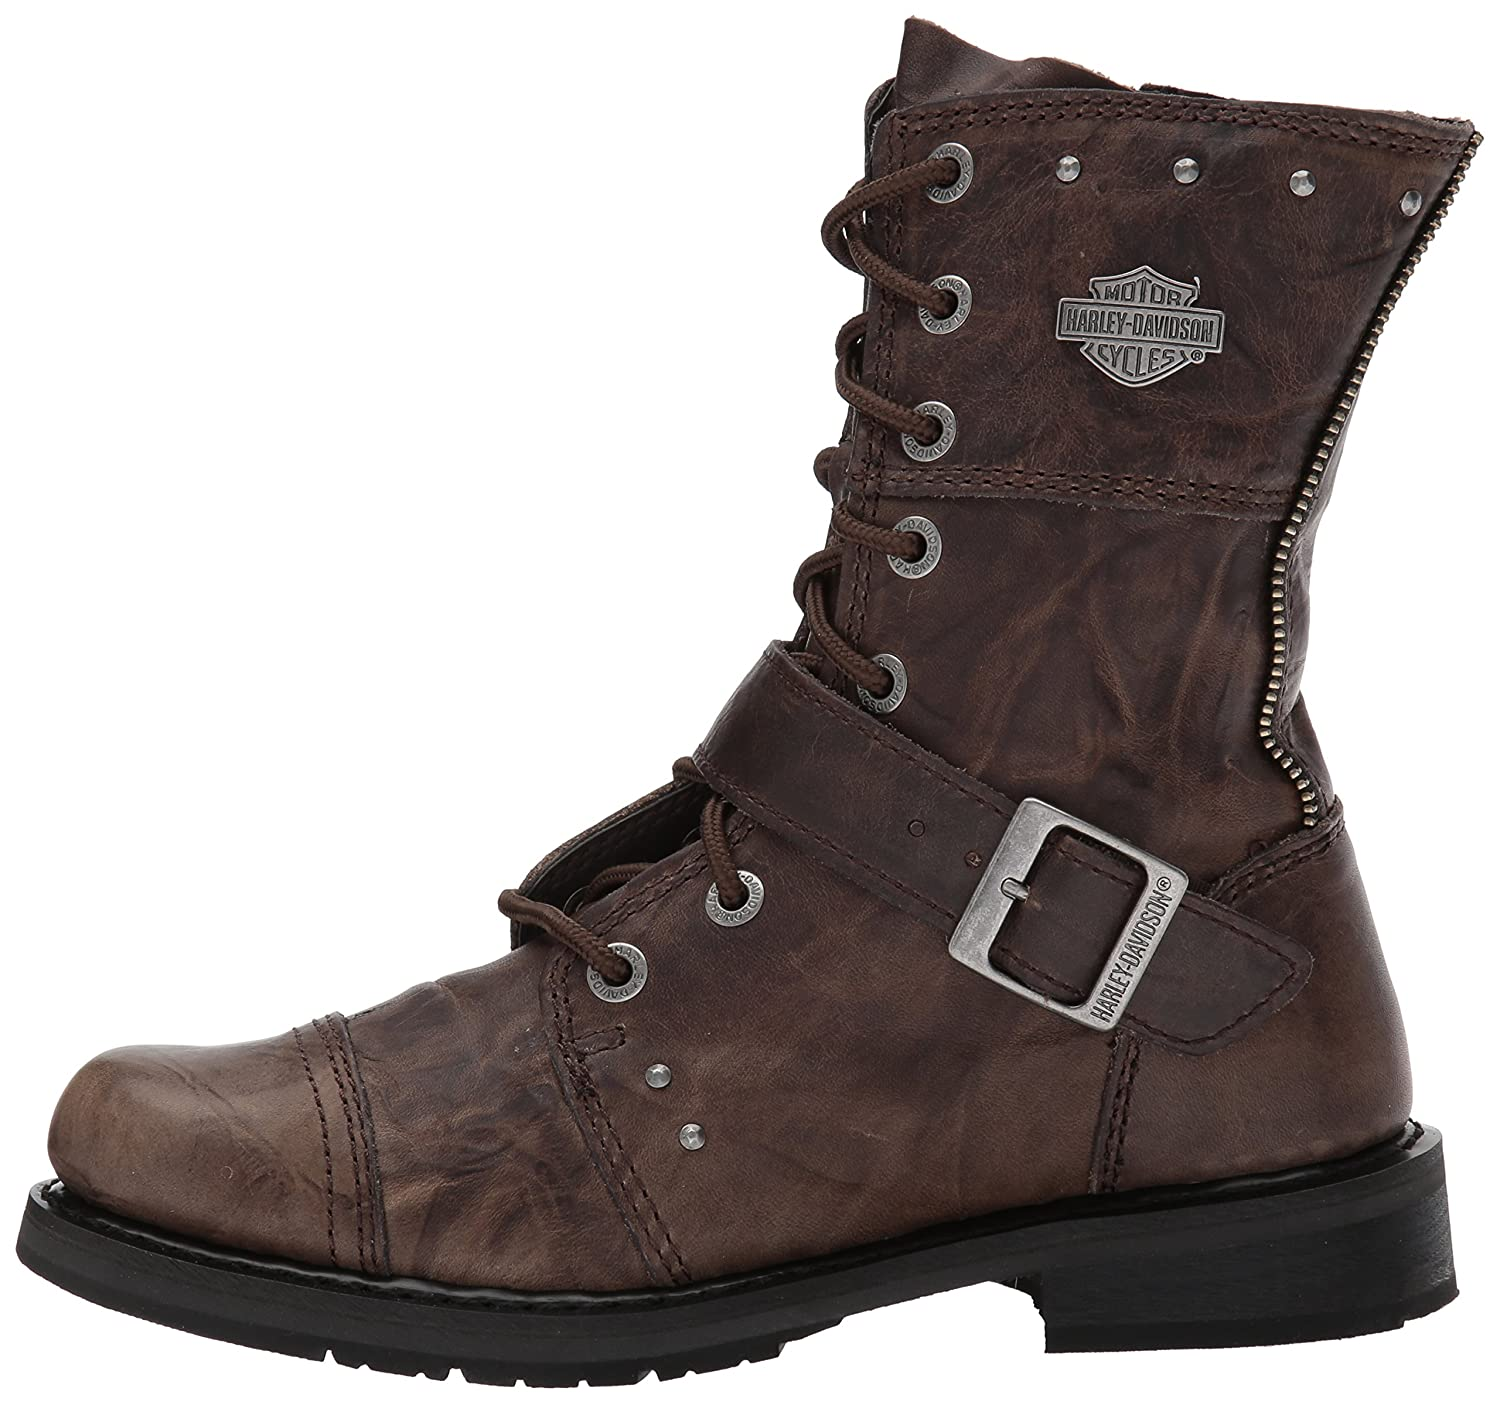 Harley-Davidson Women's 5.5 Monetta Riding Boot B01FG6A0RU 5.5 Women's B(M) US|Olive 4aa68f